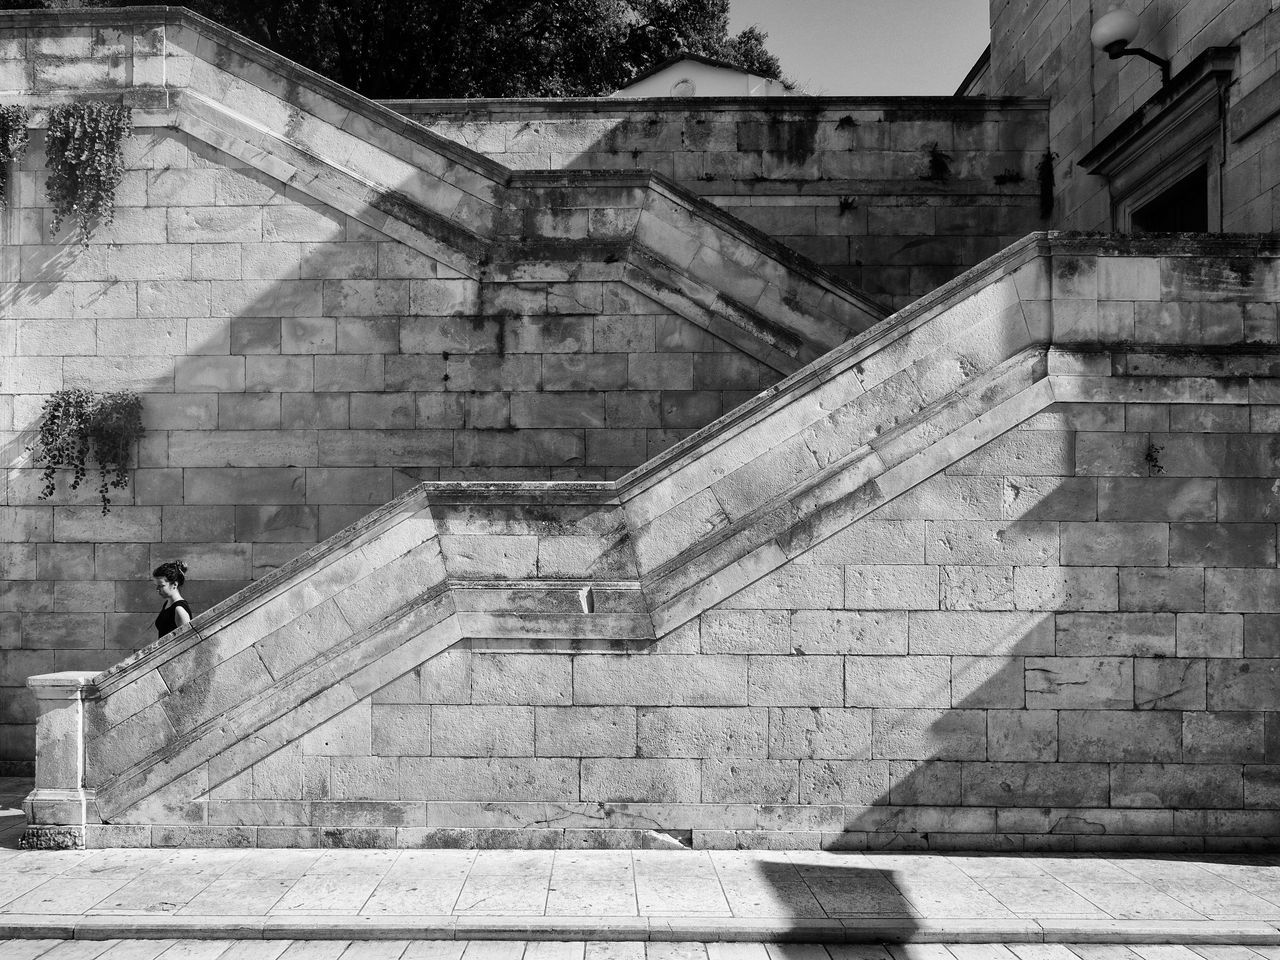 Alone Architecture City Beauty Day Diagonal Lines Old Walls One Person One Woman Only Staircase Stairs Steps Steps And Staircases Walls Woman